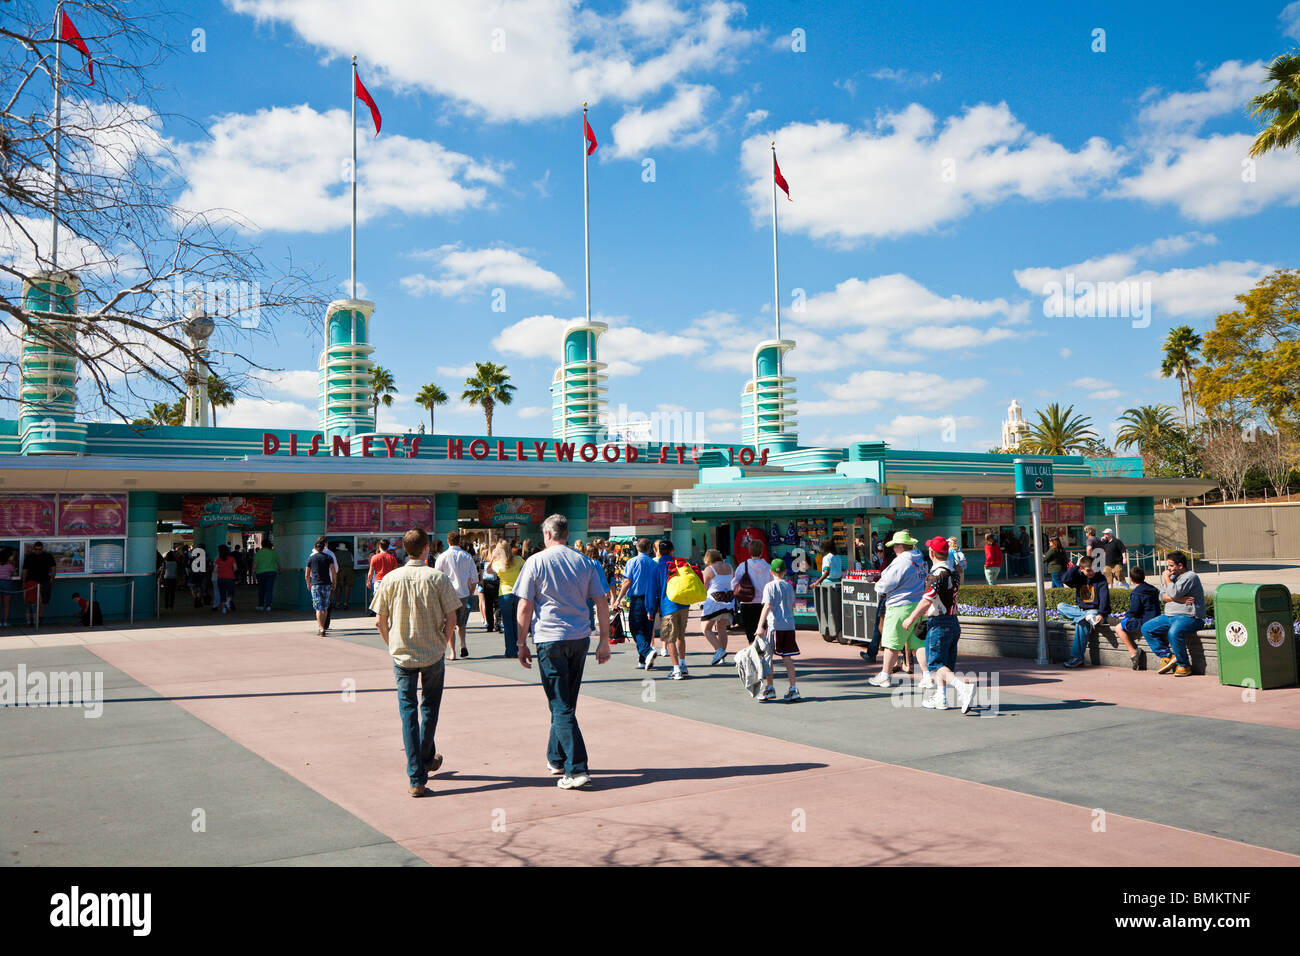 Orlando, FL - Feb 2009 - Guests at entrance to Disney's Hollywood Studios (formerly MGM Studios) in Kissimmee - Stock Image